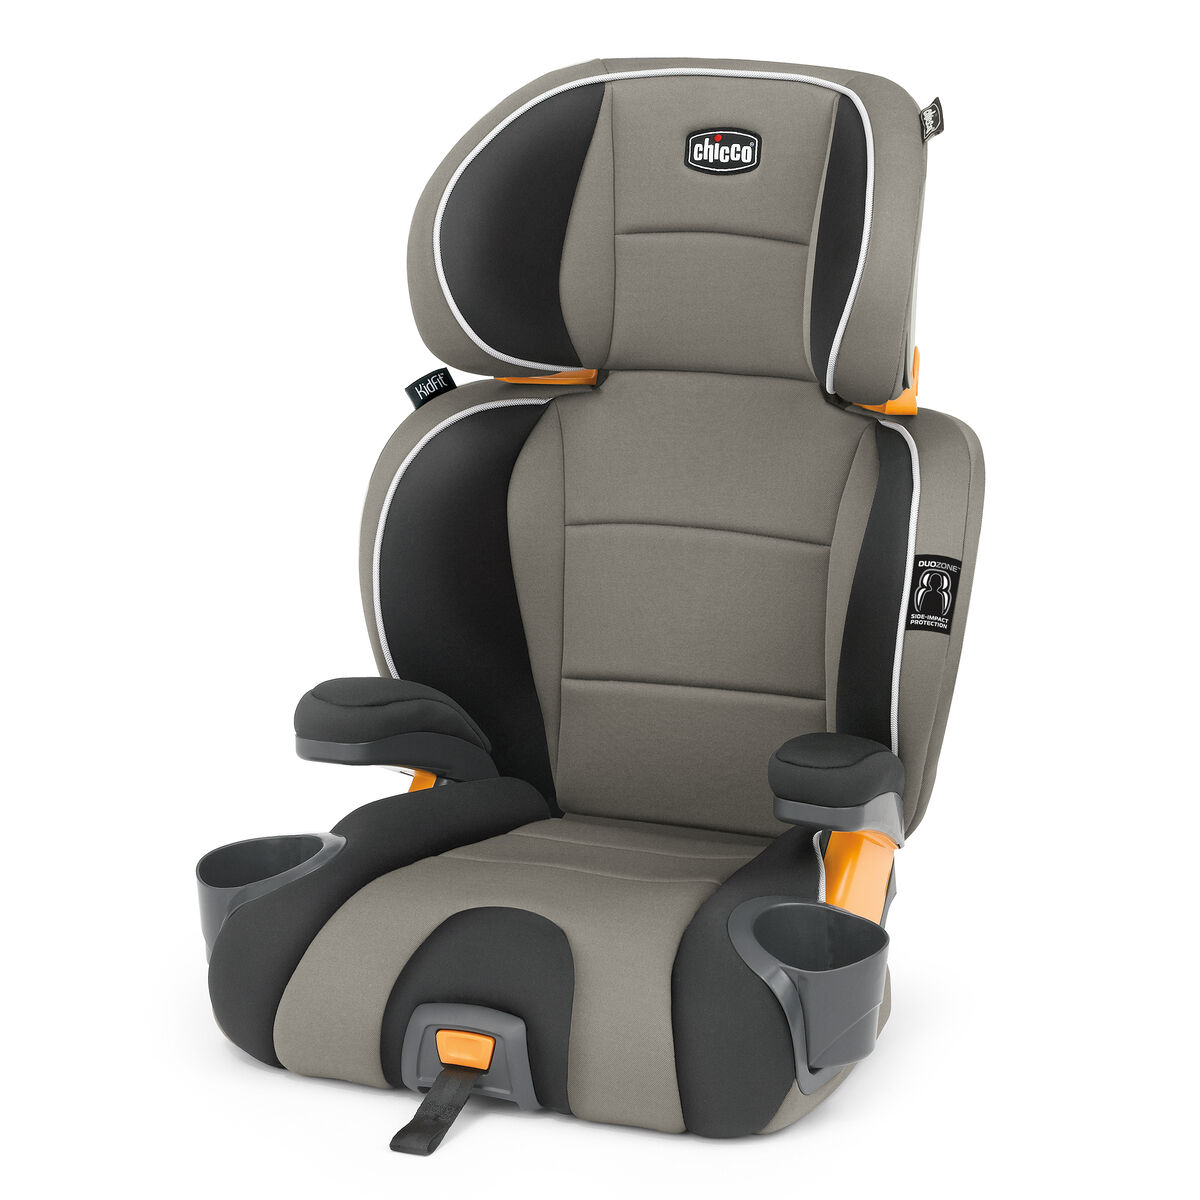 chicco kidfit n belt positioning booster seat  coupe - kidfit in belt positioning booster car seat  coupekidfit in beltpositioning booster car seat  coupe